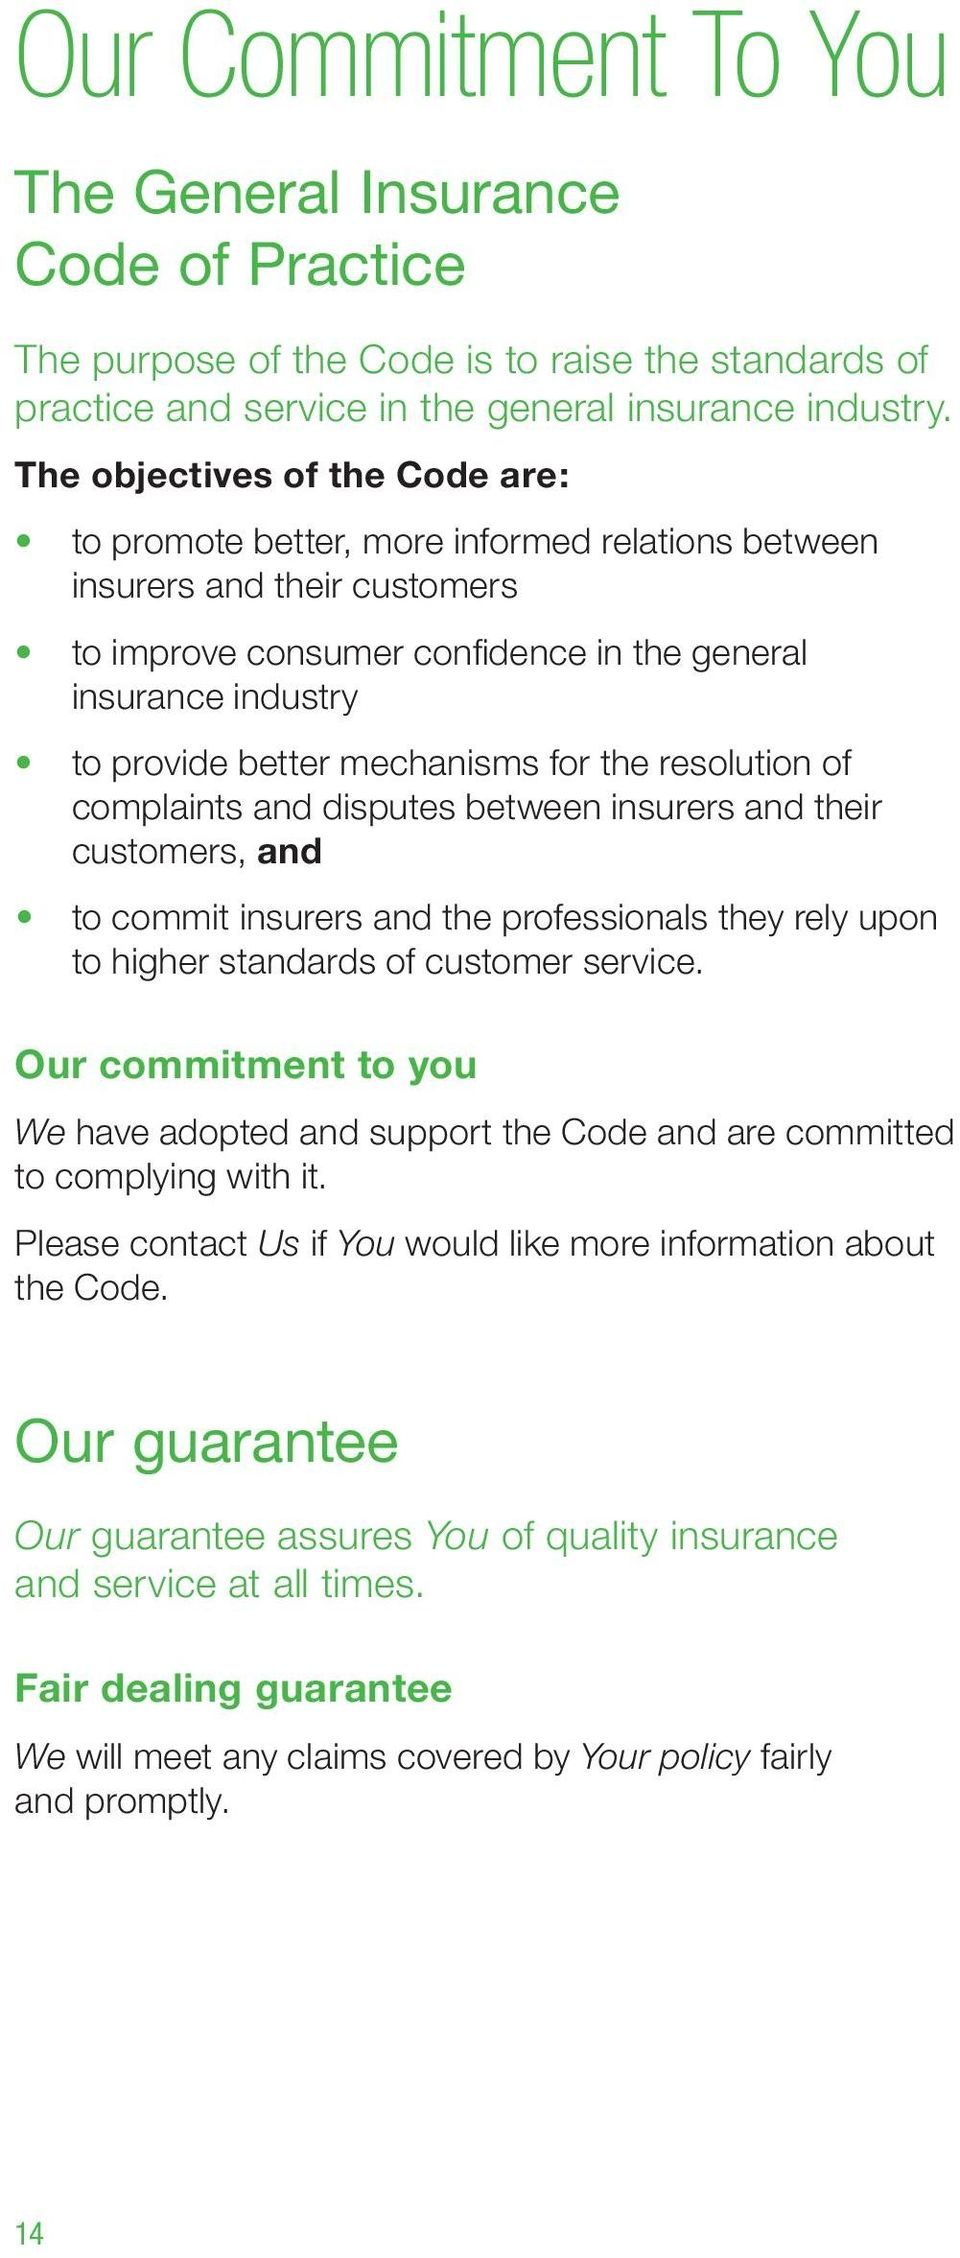 mechanisms for the resolution of complaints and disputes between insurers and their customers, and to commit insurers and the professionals they rely upon to higher standards of customer service.